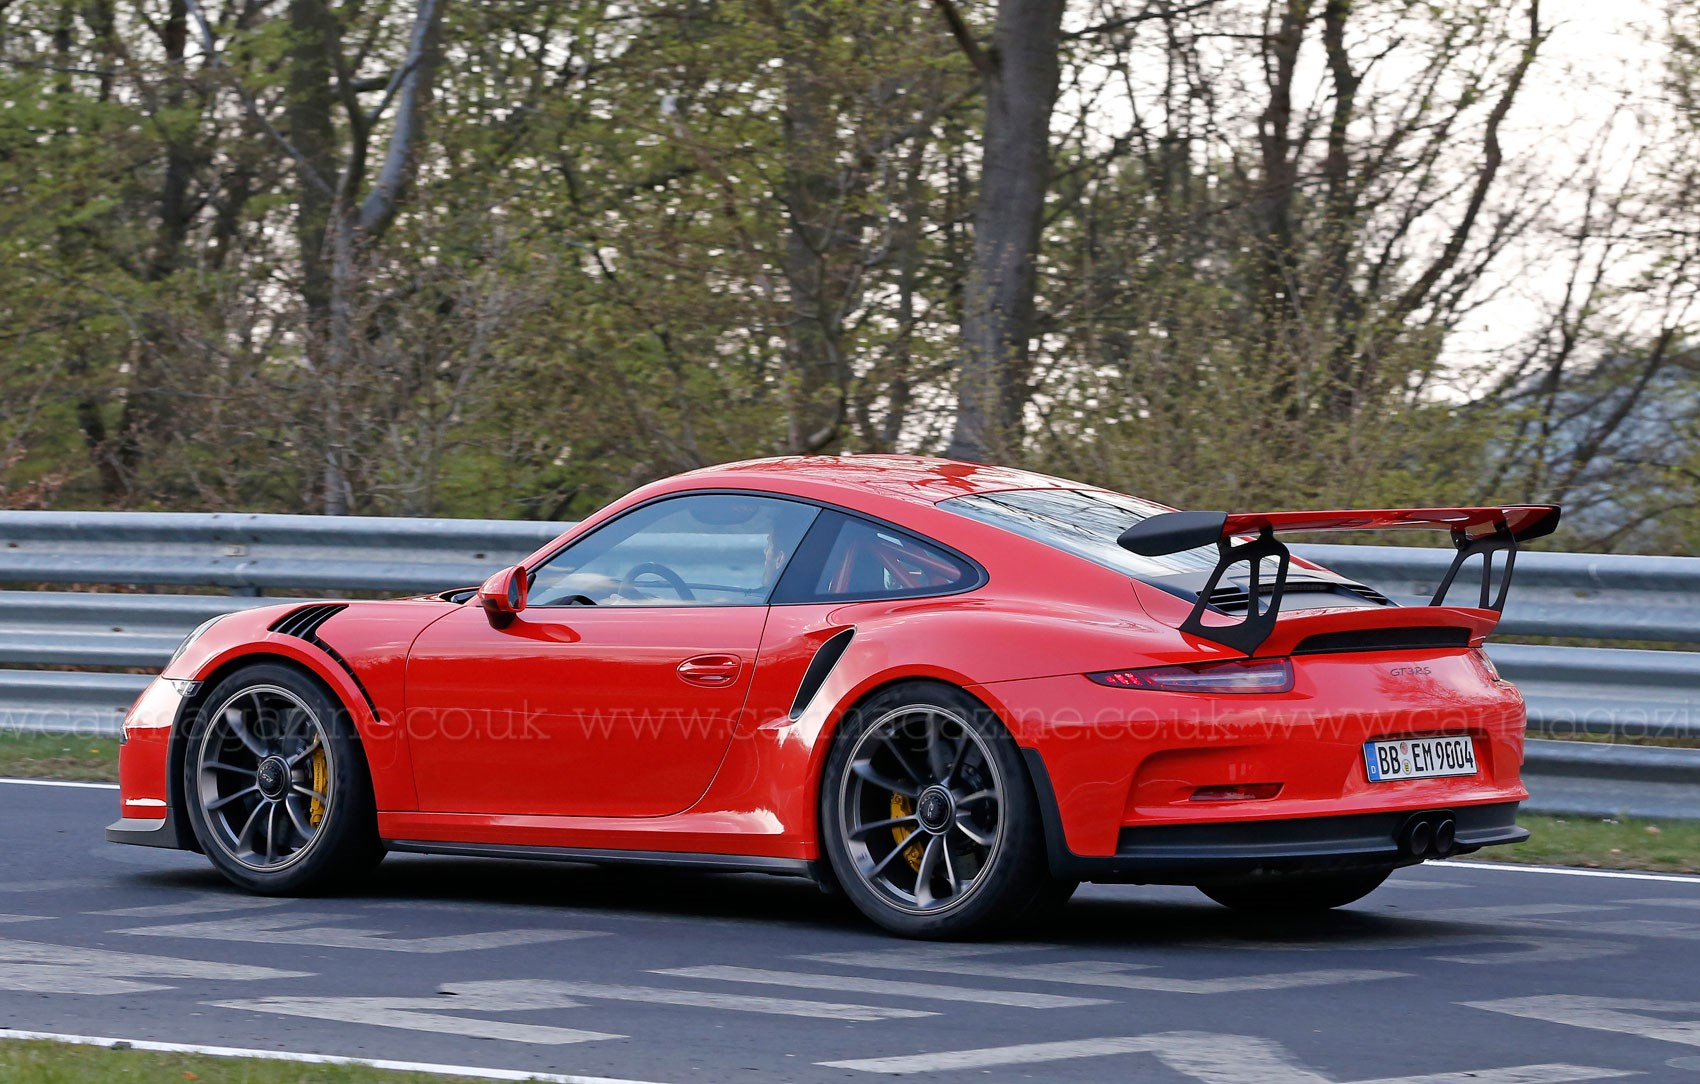 Turbo Style Side Vents Feed Air Into A Race Derived Central Airbox 991 Gt3 Rs Design Was Spilled